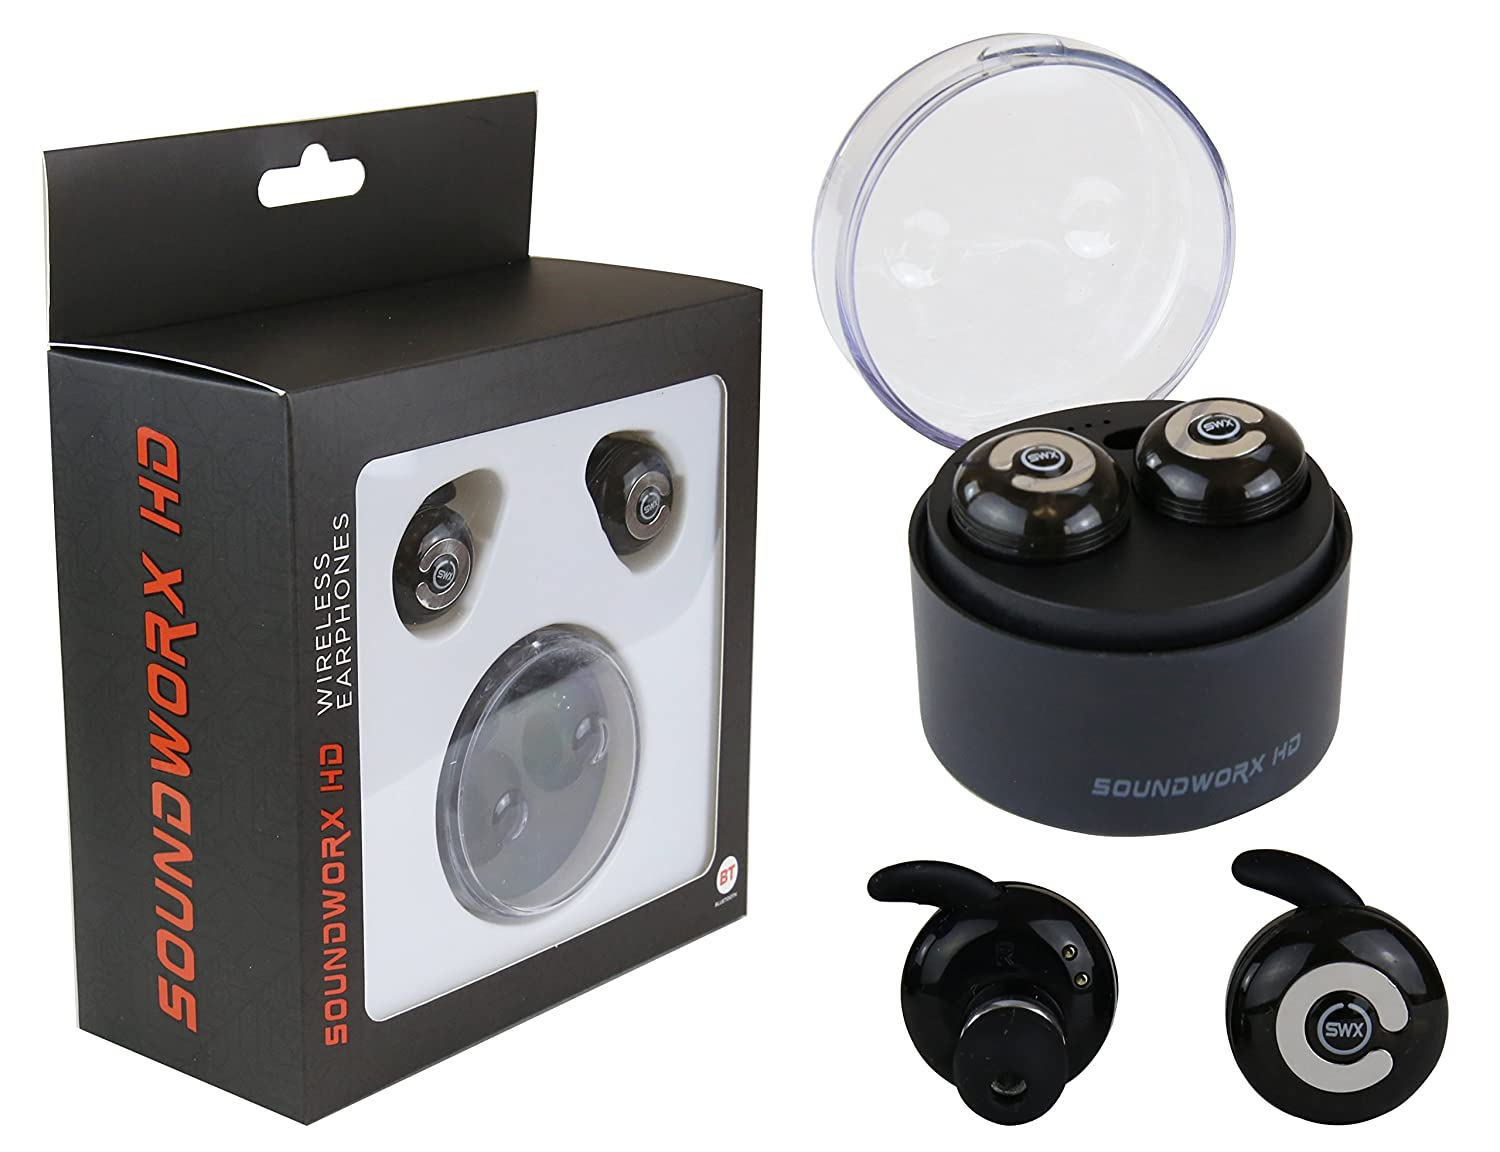 Amazon.com: Audifonos Inalambricos con Alcance de 130 pies, Bluetooth V4.1 con Microfono y Base Cargadora: Home Audio & Theater